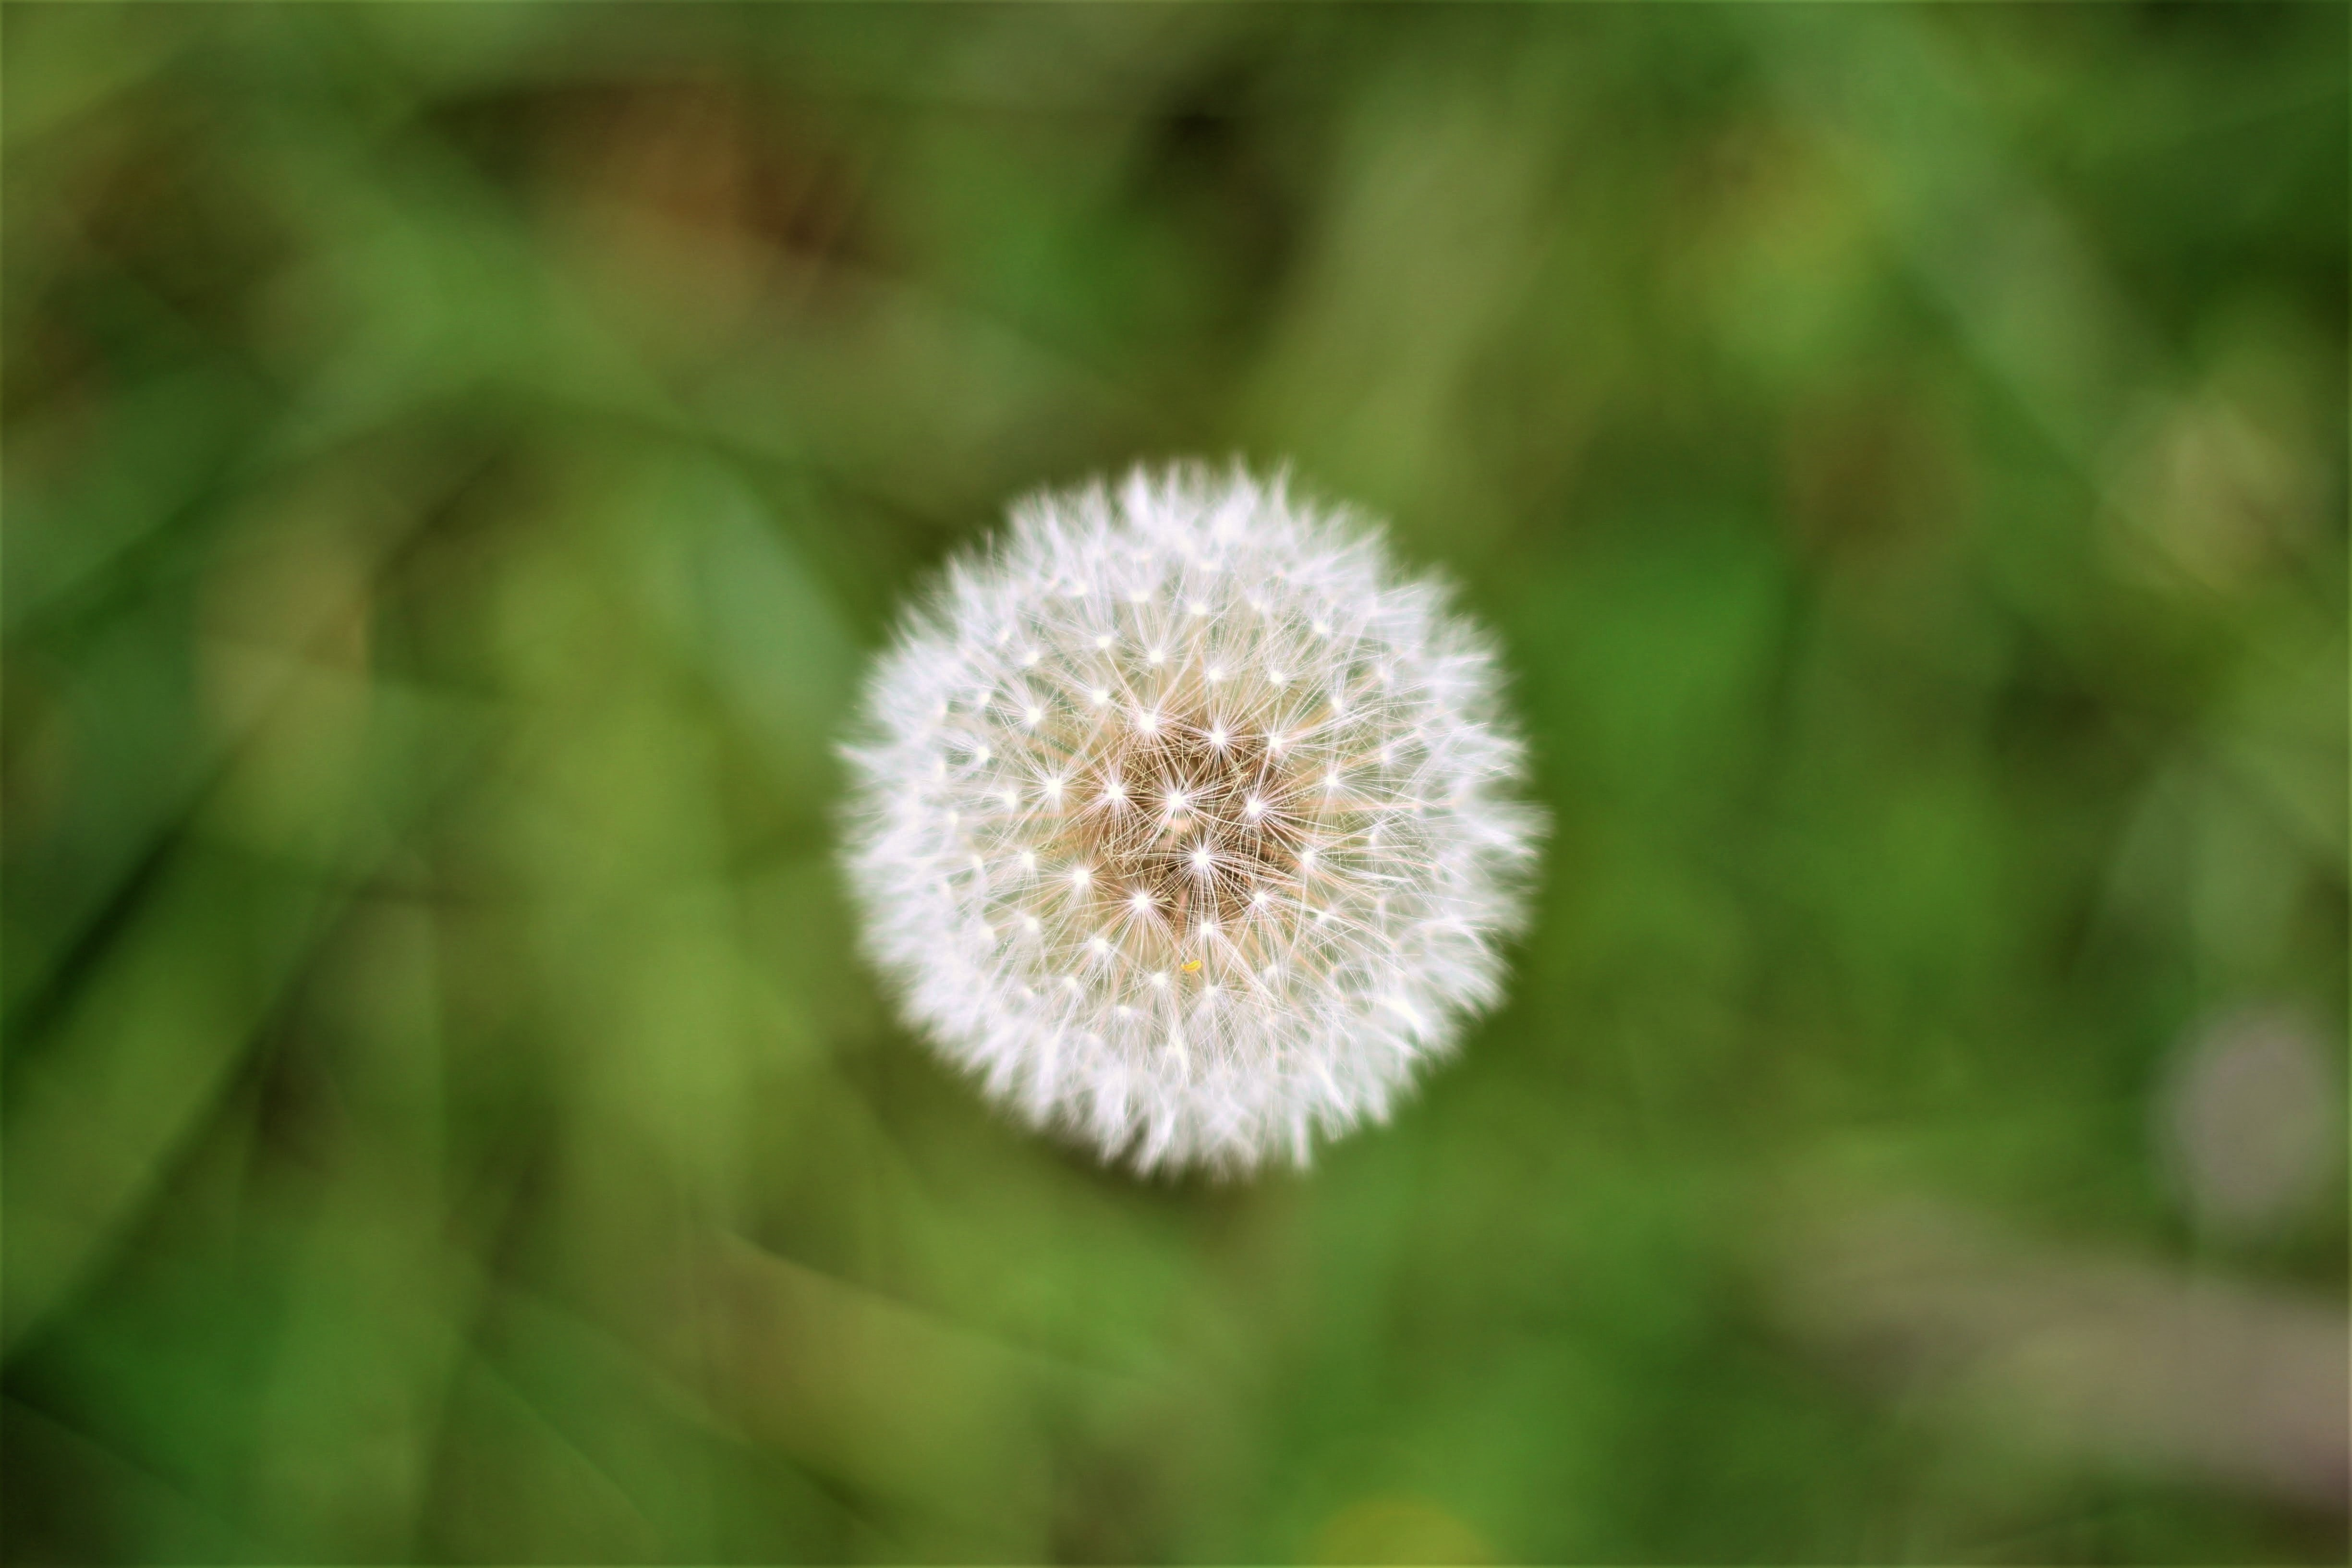 close up photo of dandelion flower